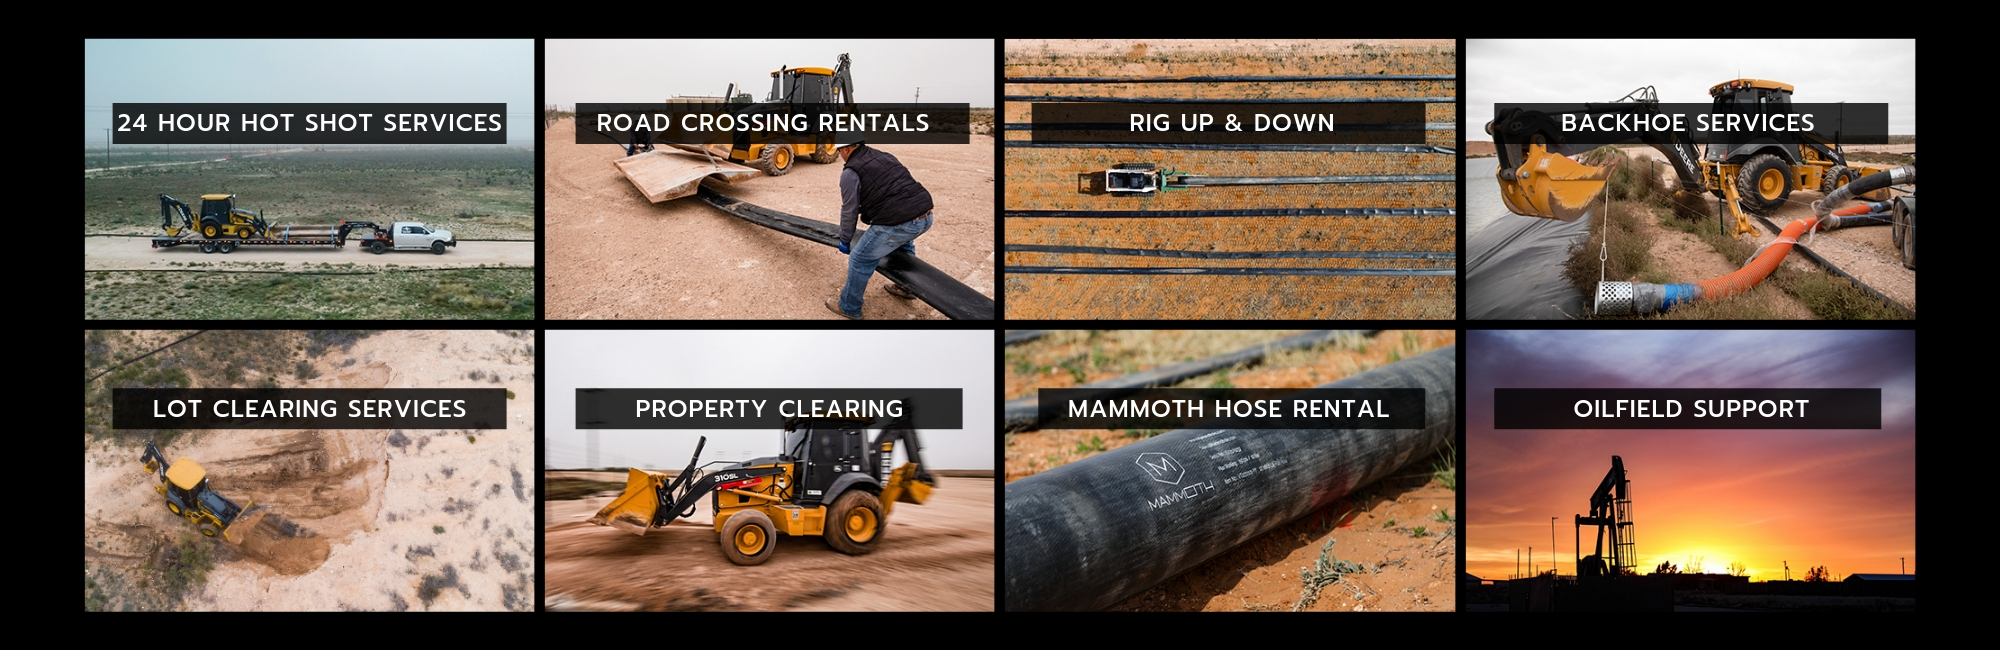 D&C Backhoe Services in Midland, TX